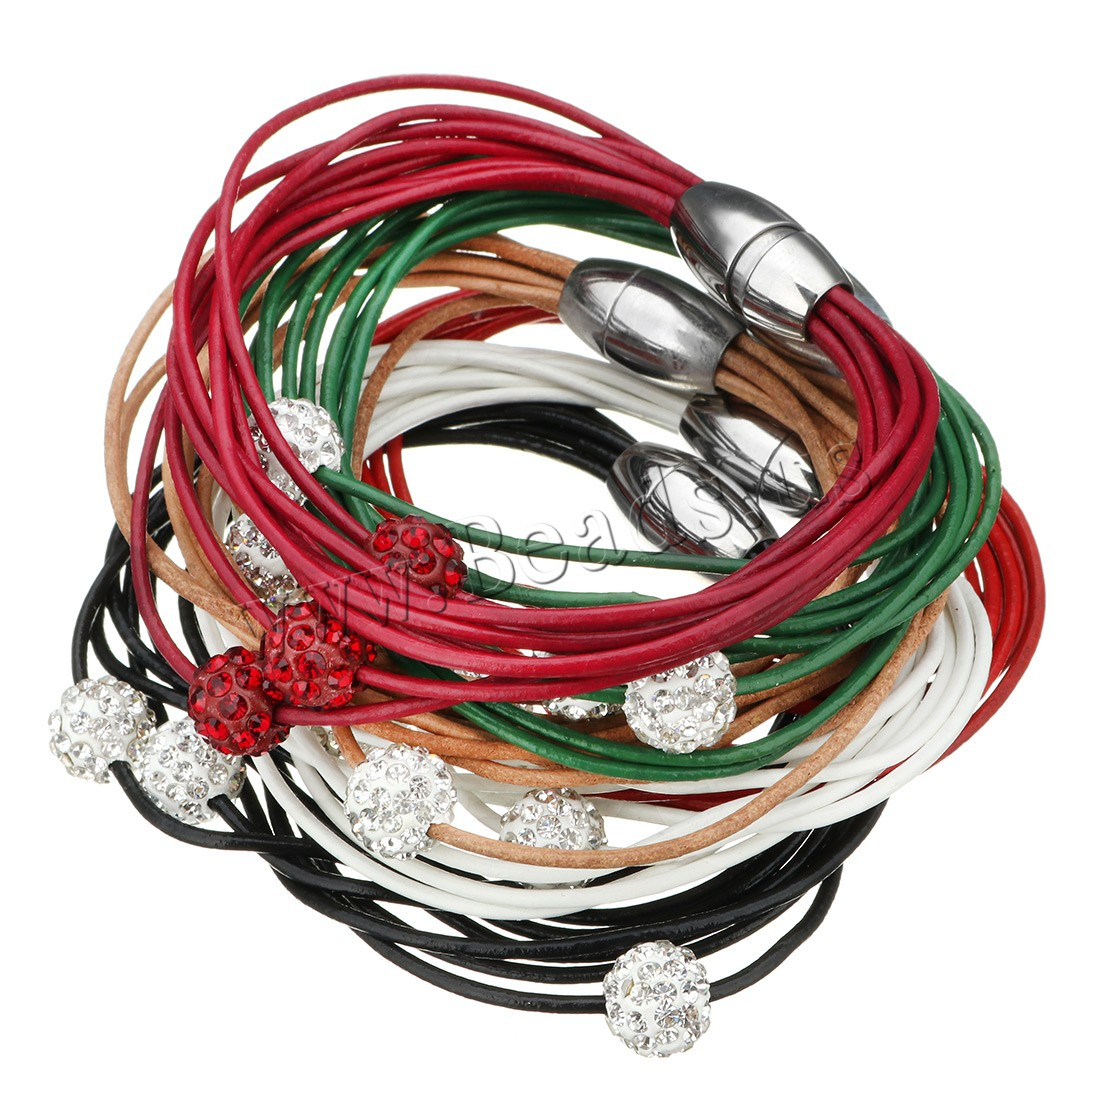 Buy Zinc Alloy Bracelet PU Leather Rhinestone Clay Pave Bead stainless steel magnetic clasp woman & mixed & multi-strand original color 10mm Length:Approx 8 Inch 15Strands/Lot Sold Lot